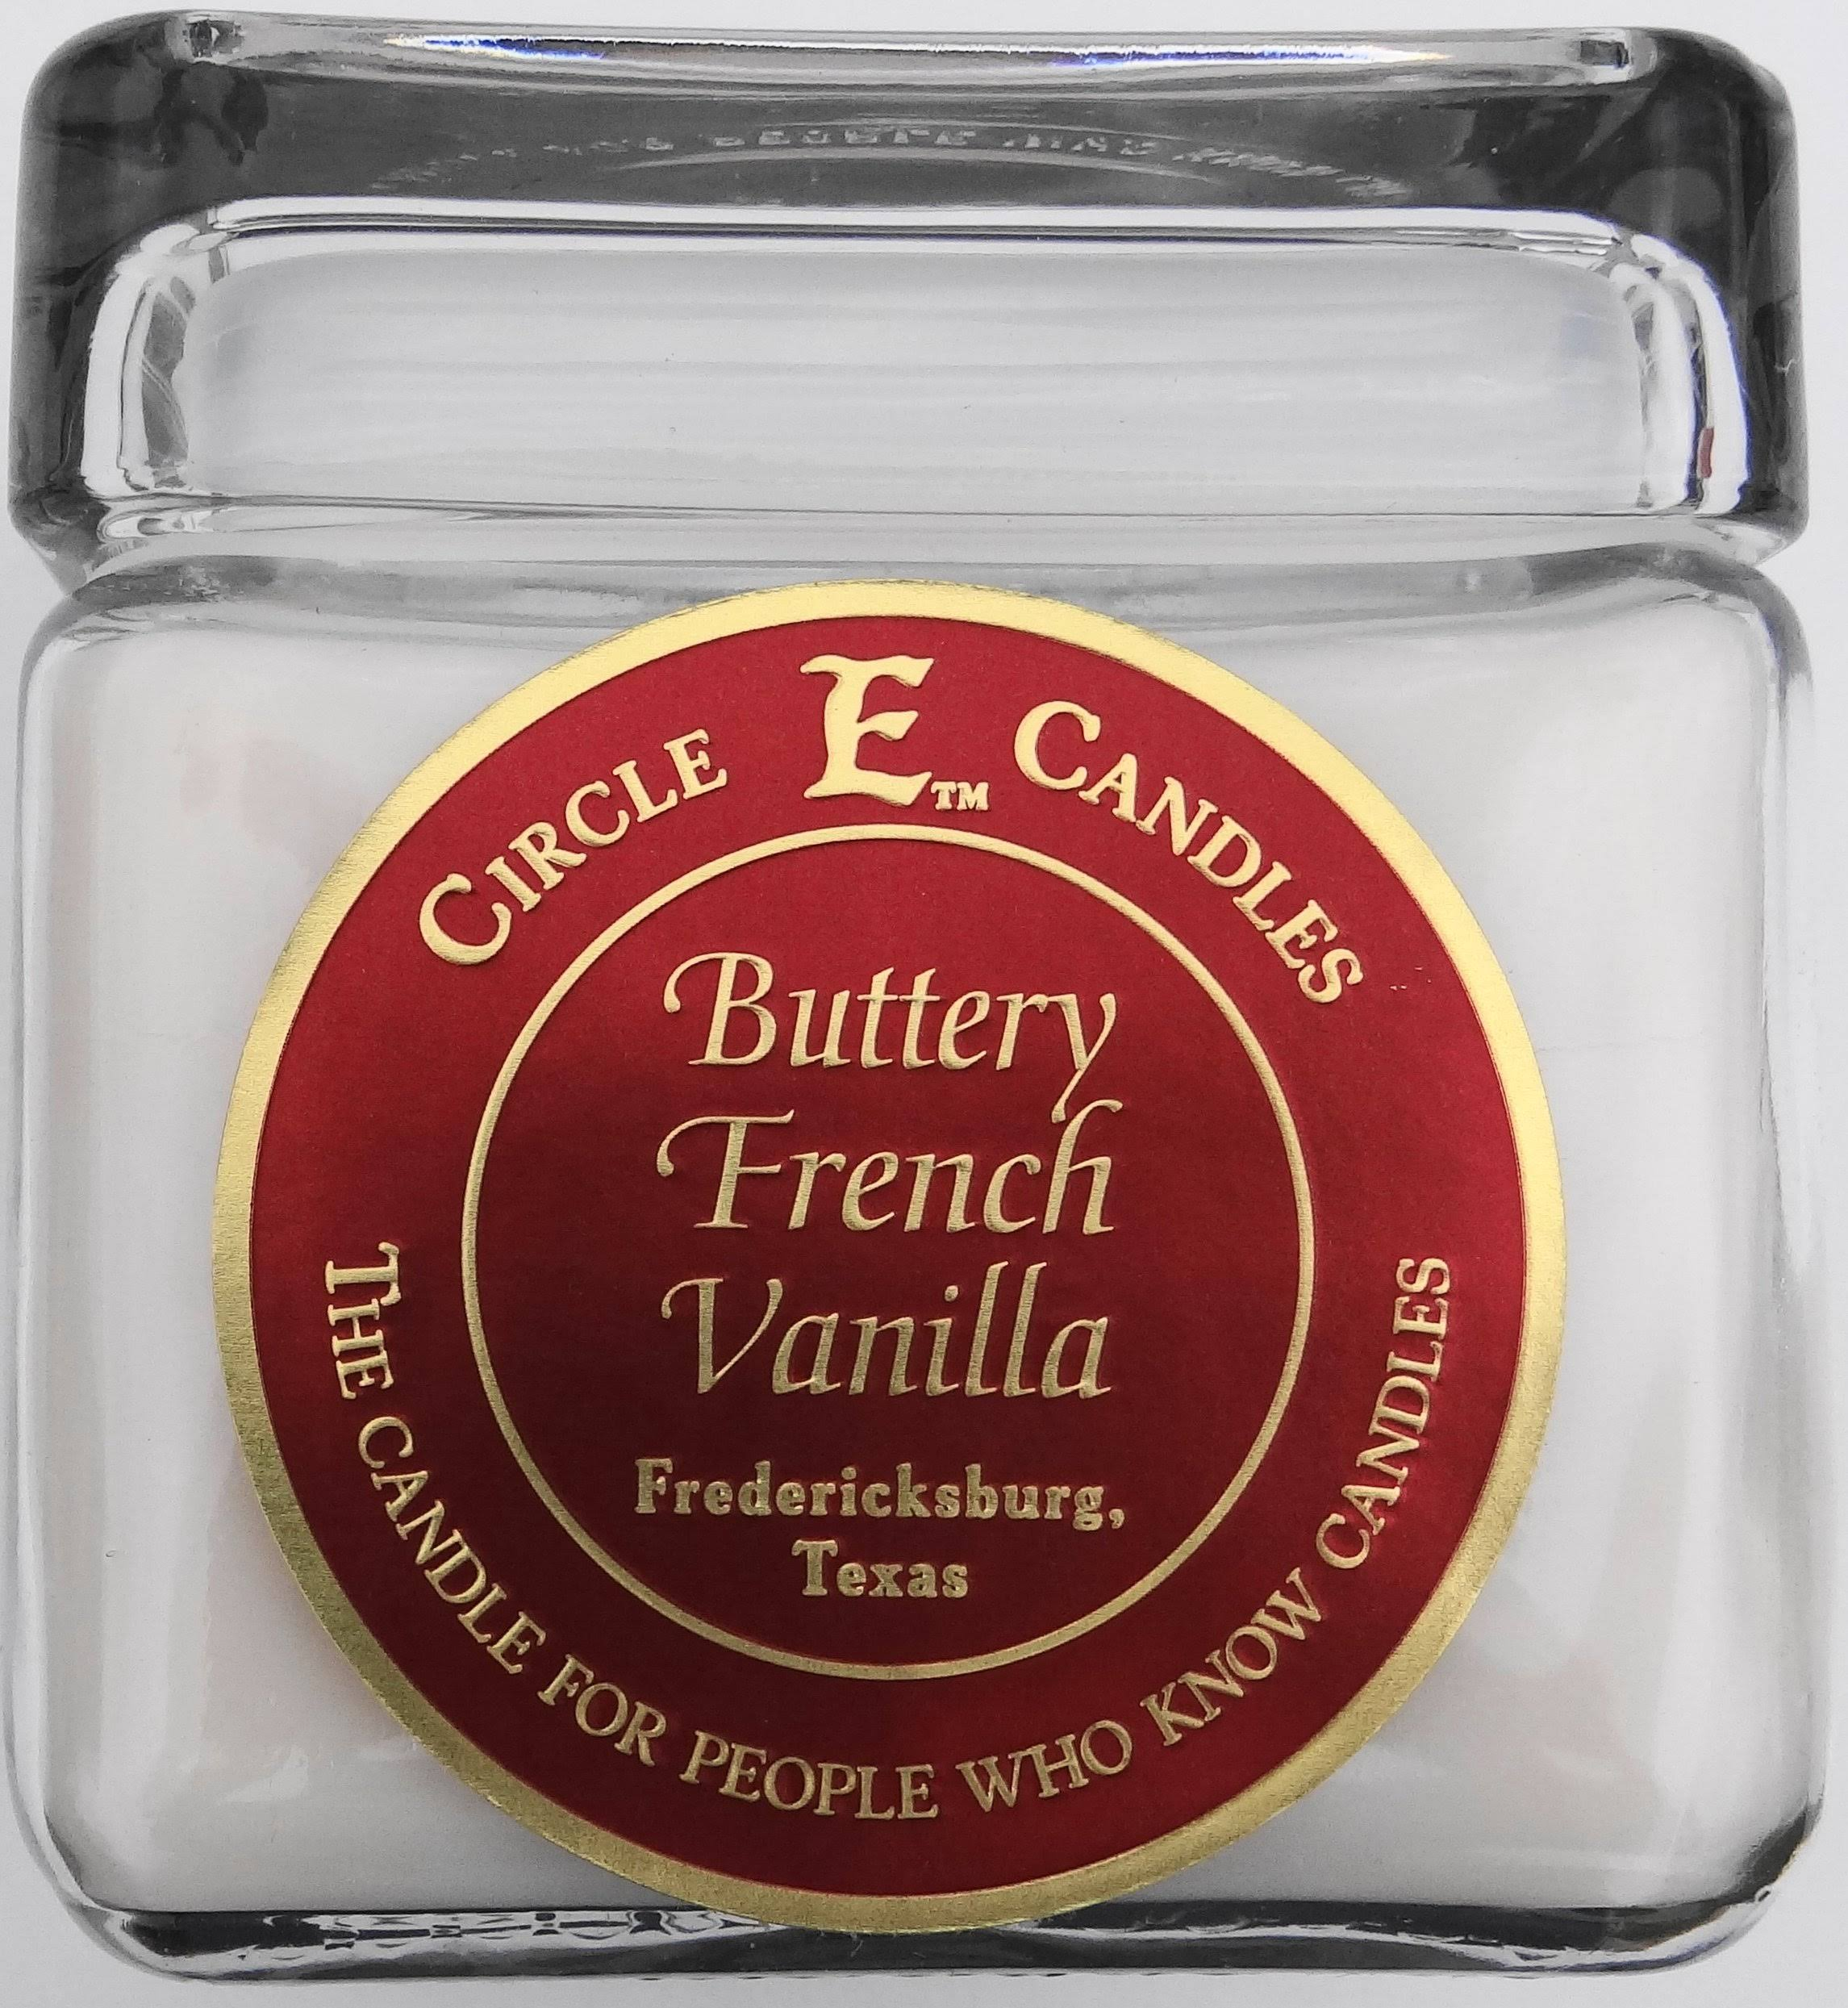 Circle E Candles 28oz Buttery French Vanilla